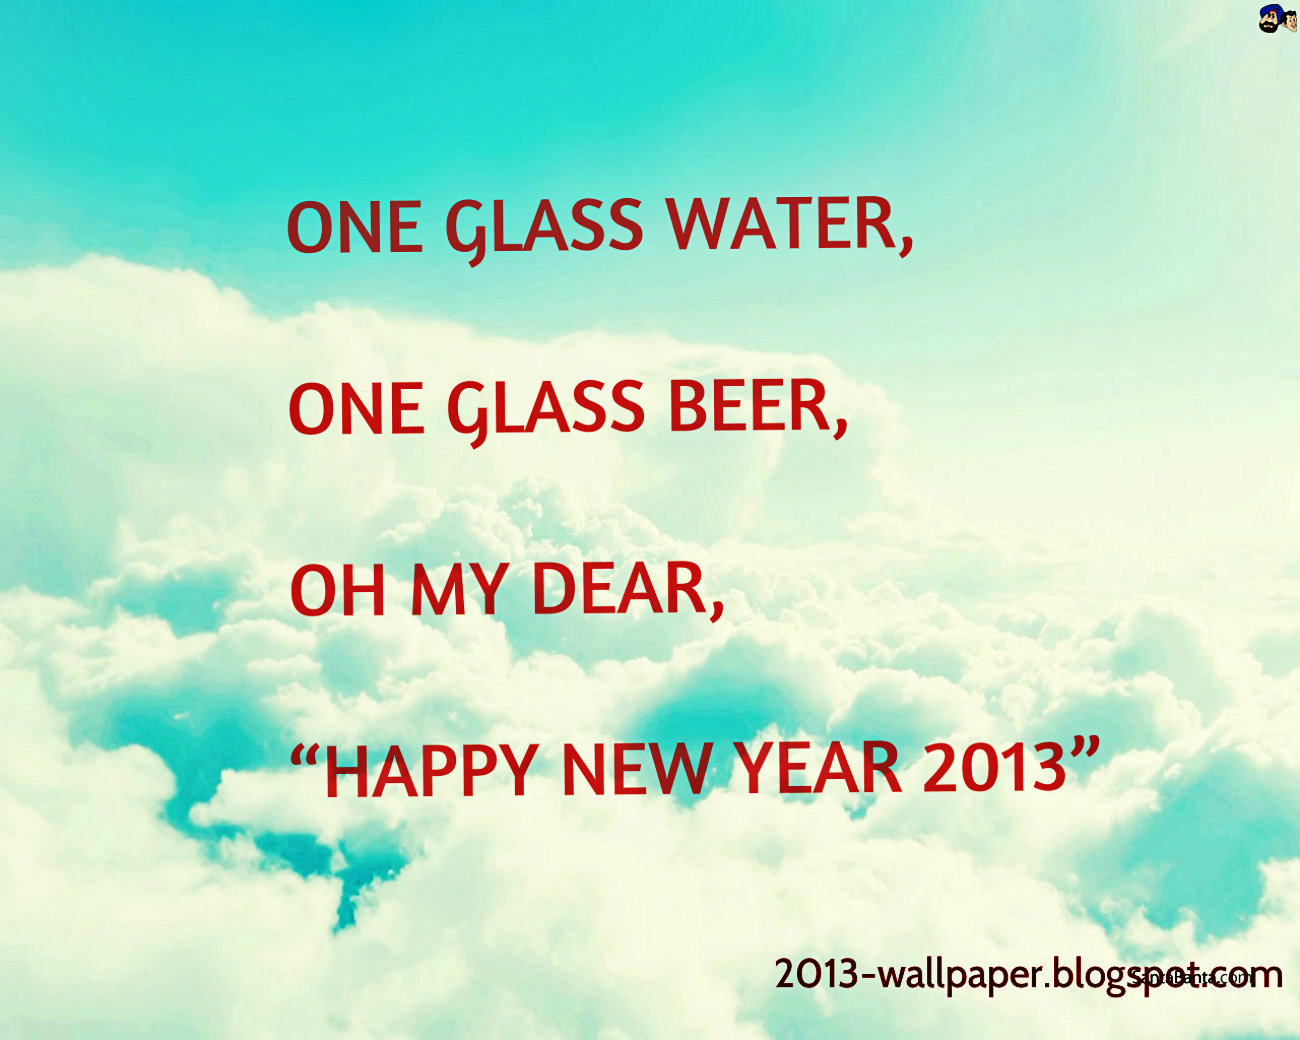 Happynewyear2013smsquoteswallpaper2013wallpaperblogspotcom. 1300 x 1040.Funny Happy New Years E-cards